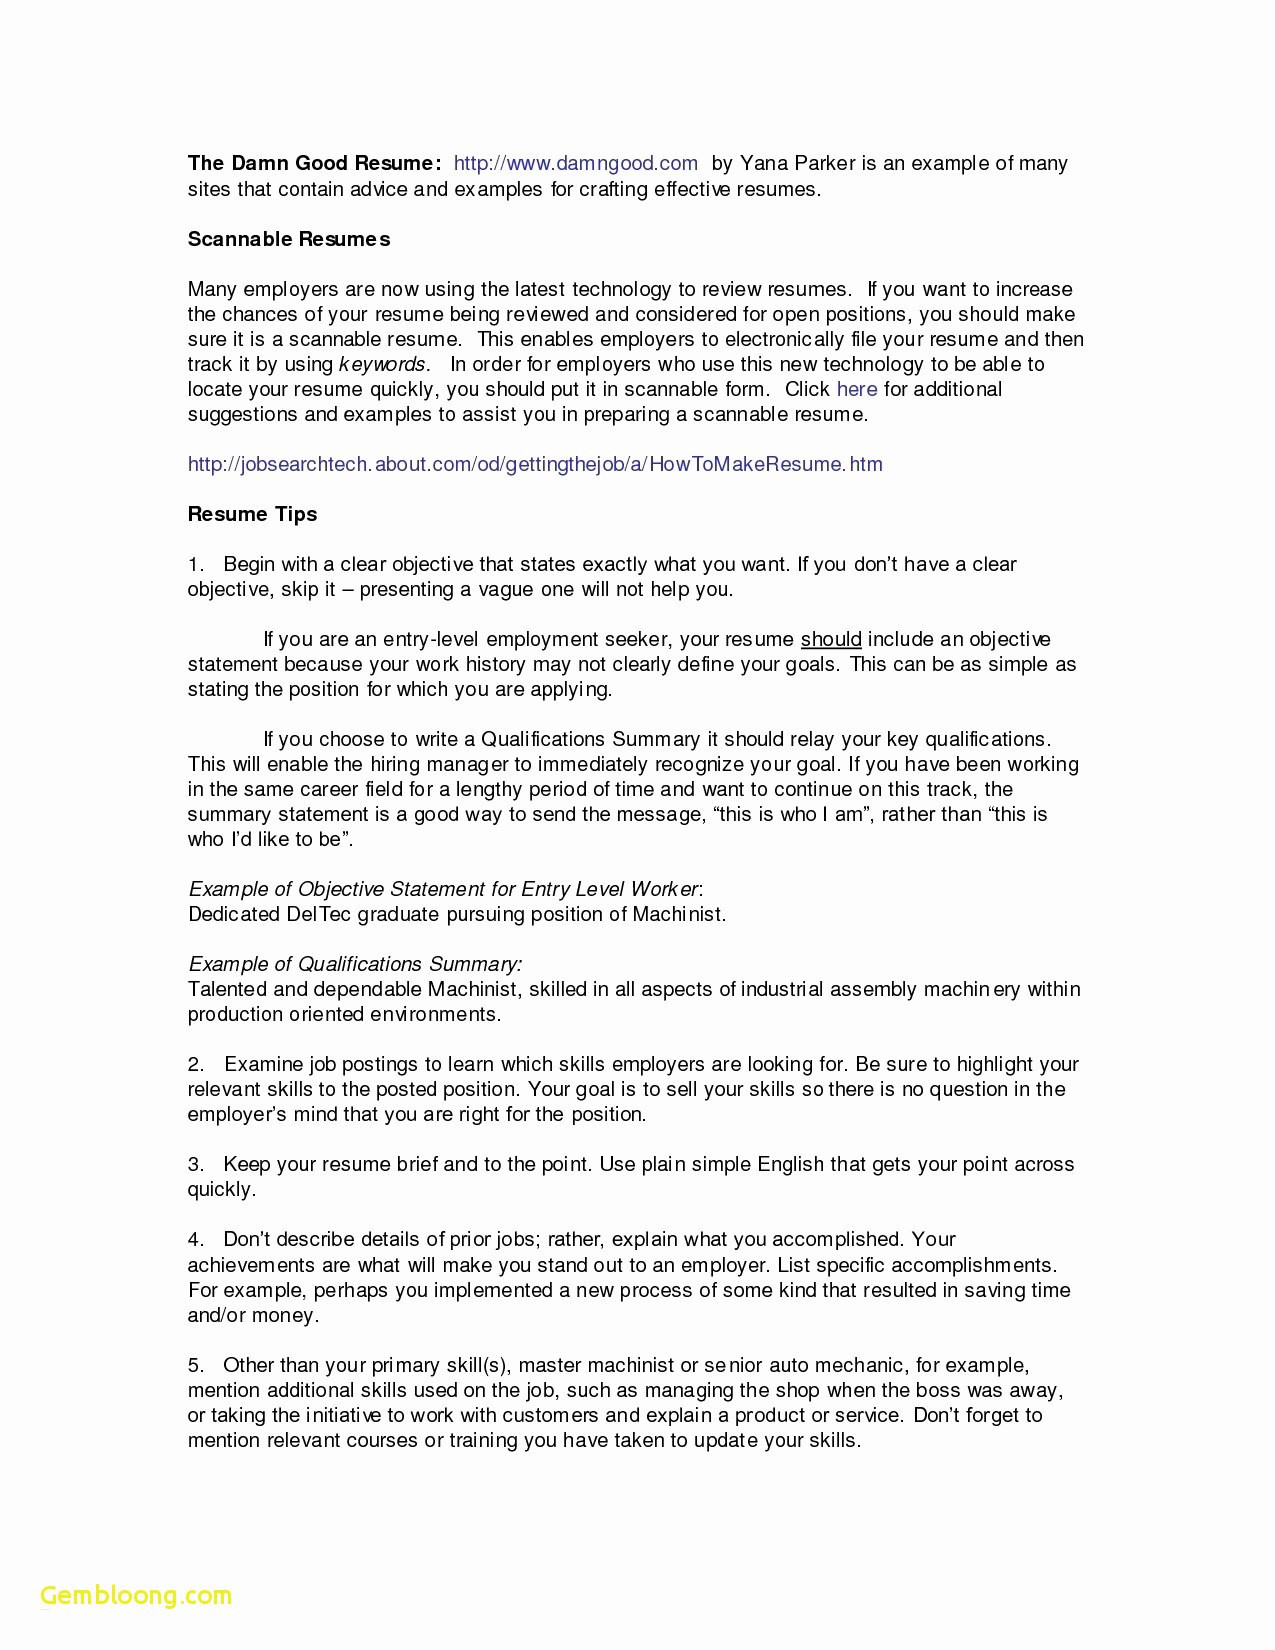 Resume Templates that Stand Out - Free Resume Templates that Stand Out Free Downloads Resume Templates